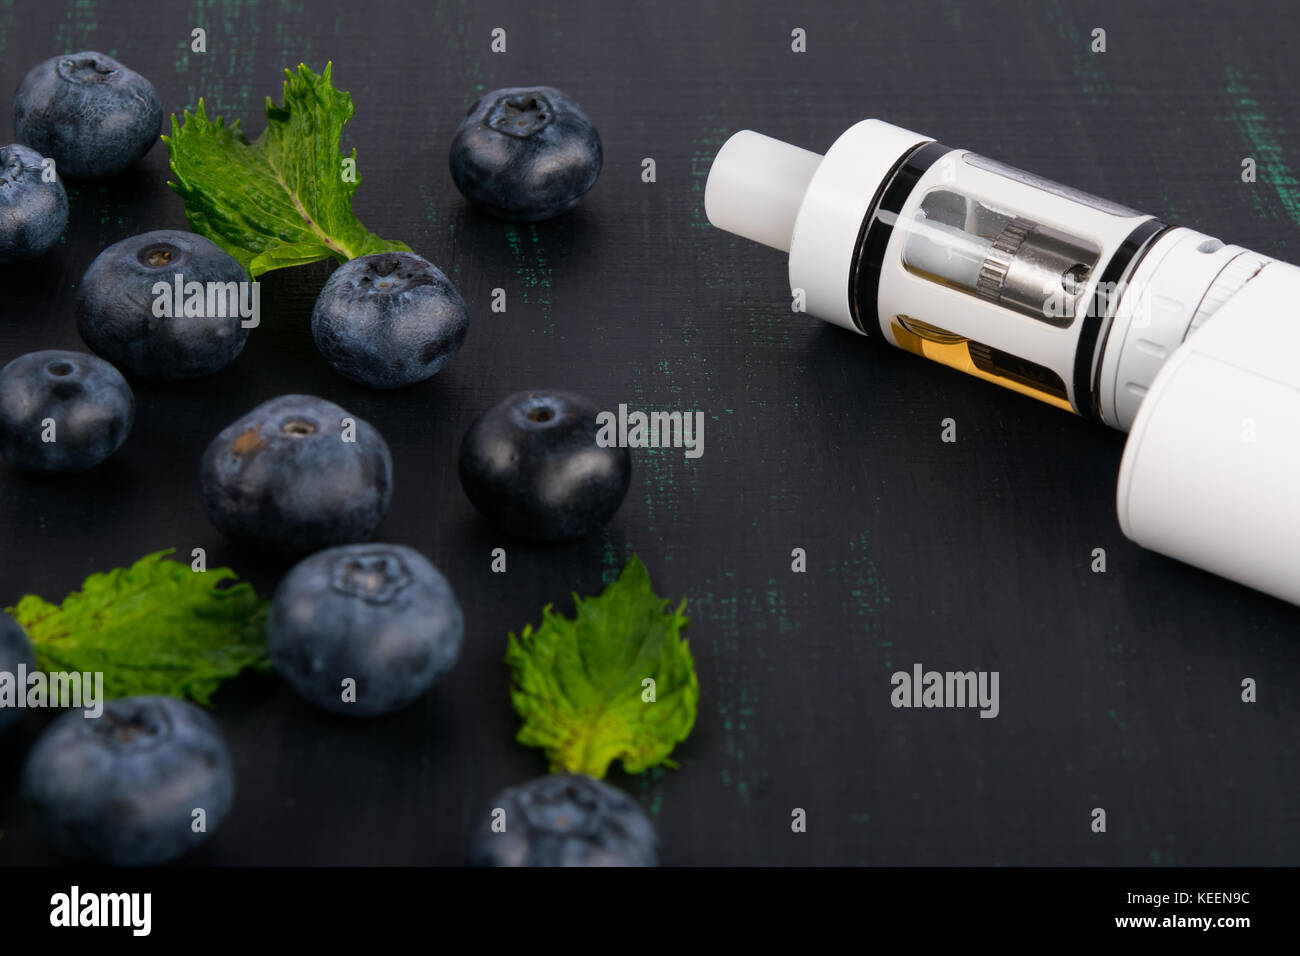 white electronic cigarette on a dark table, next to a scattered berry - Stock Image